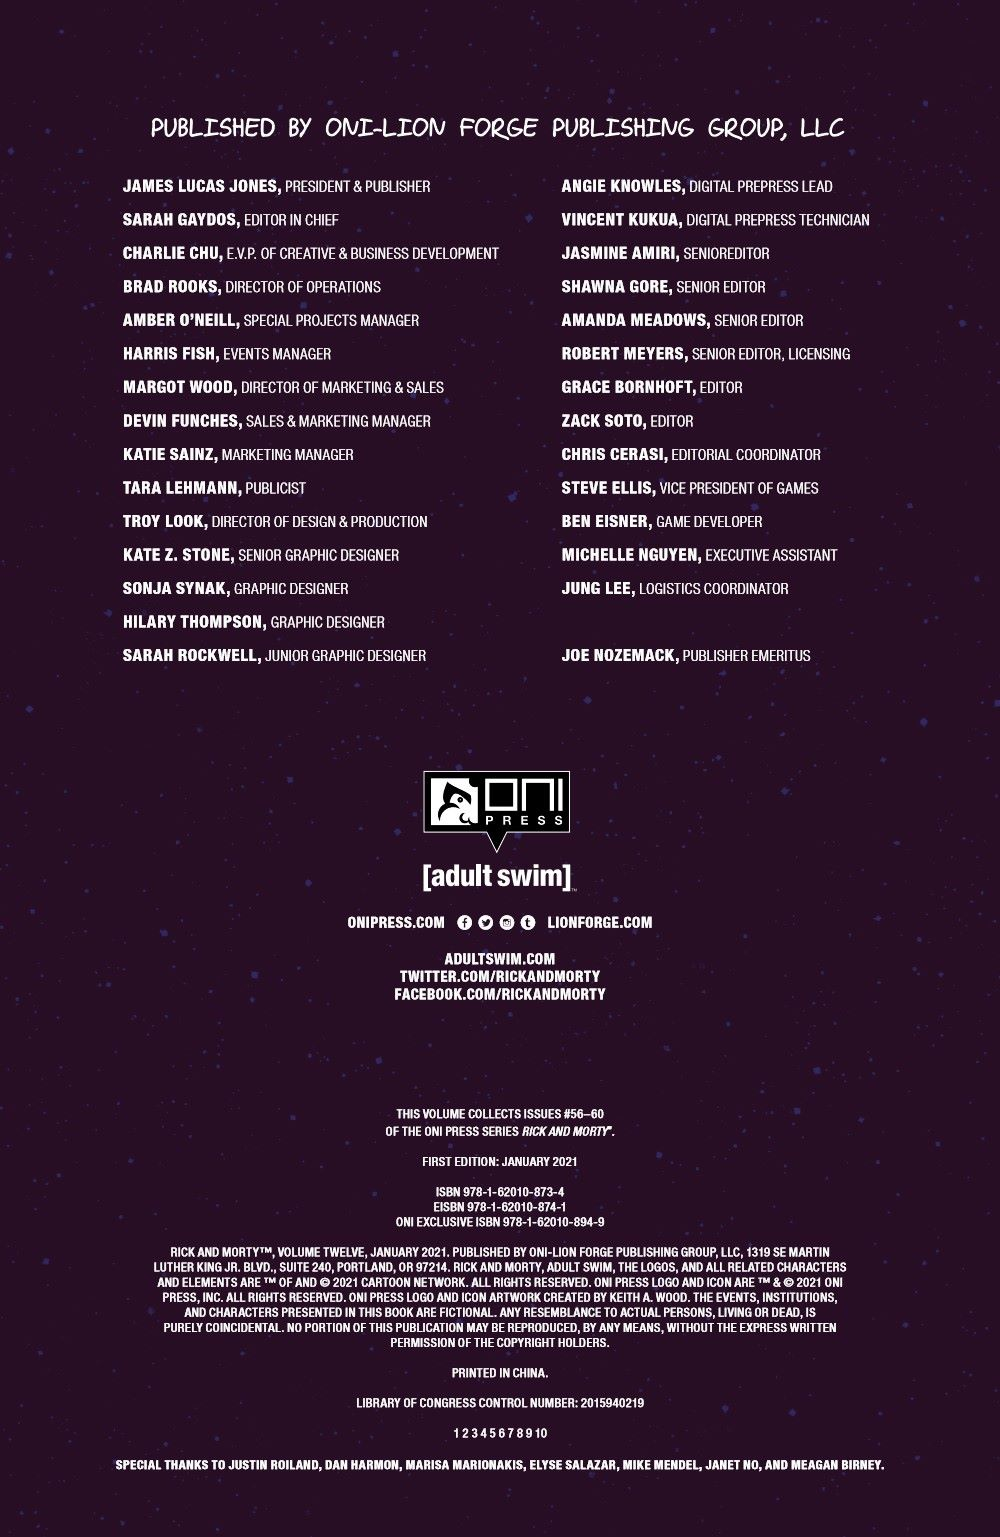 RICKMORTY-V12-TPB-REFERENCE-005 ComicList Previews: RICK AND MORTY VOLUME 12 TP